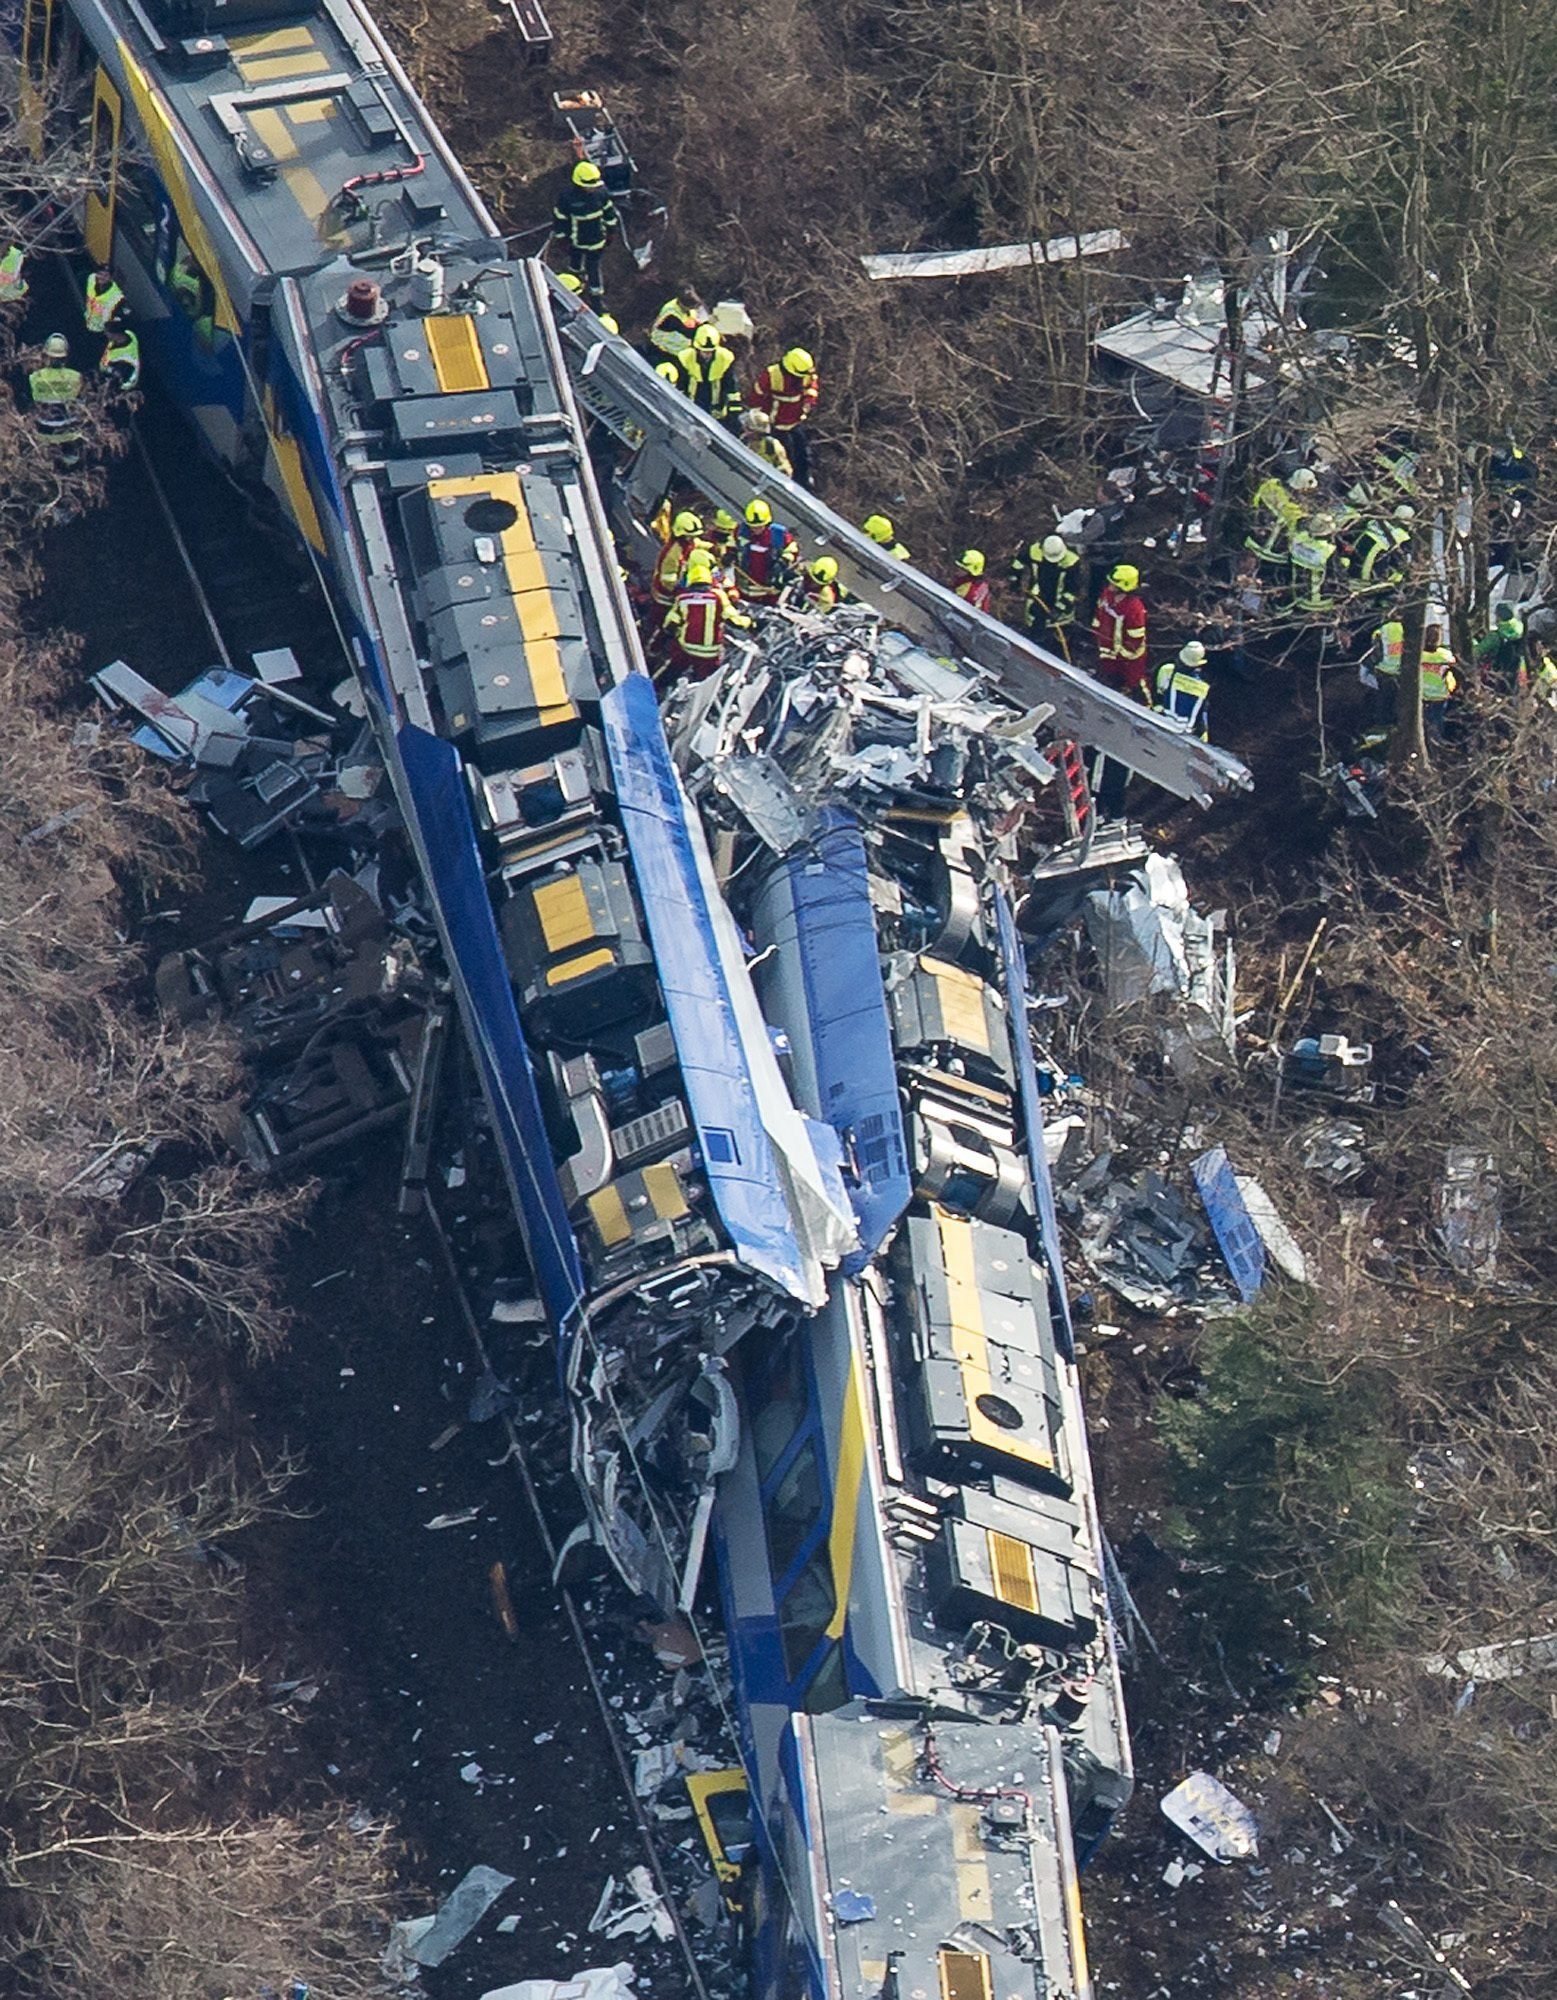 epa05151013 An aerial view of rescue forces working at the site of a train accident near Bad Aibling,¿Germany, 09 February 2016. At least eight people are dead and another 90 injured after two commuter trains collided head on near the southern German town of Bad Aibling, police said. EPA/PETER KNEFFEL